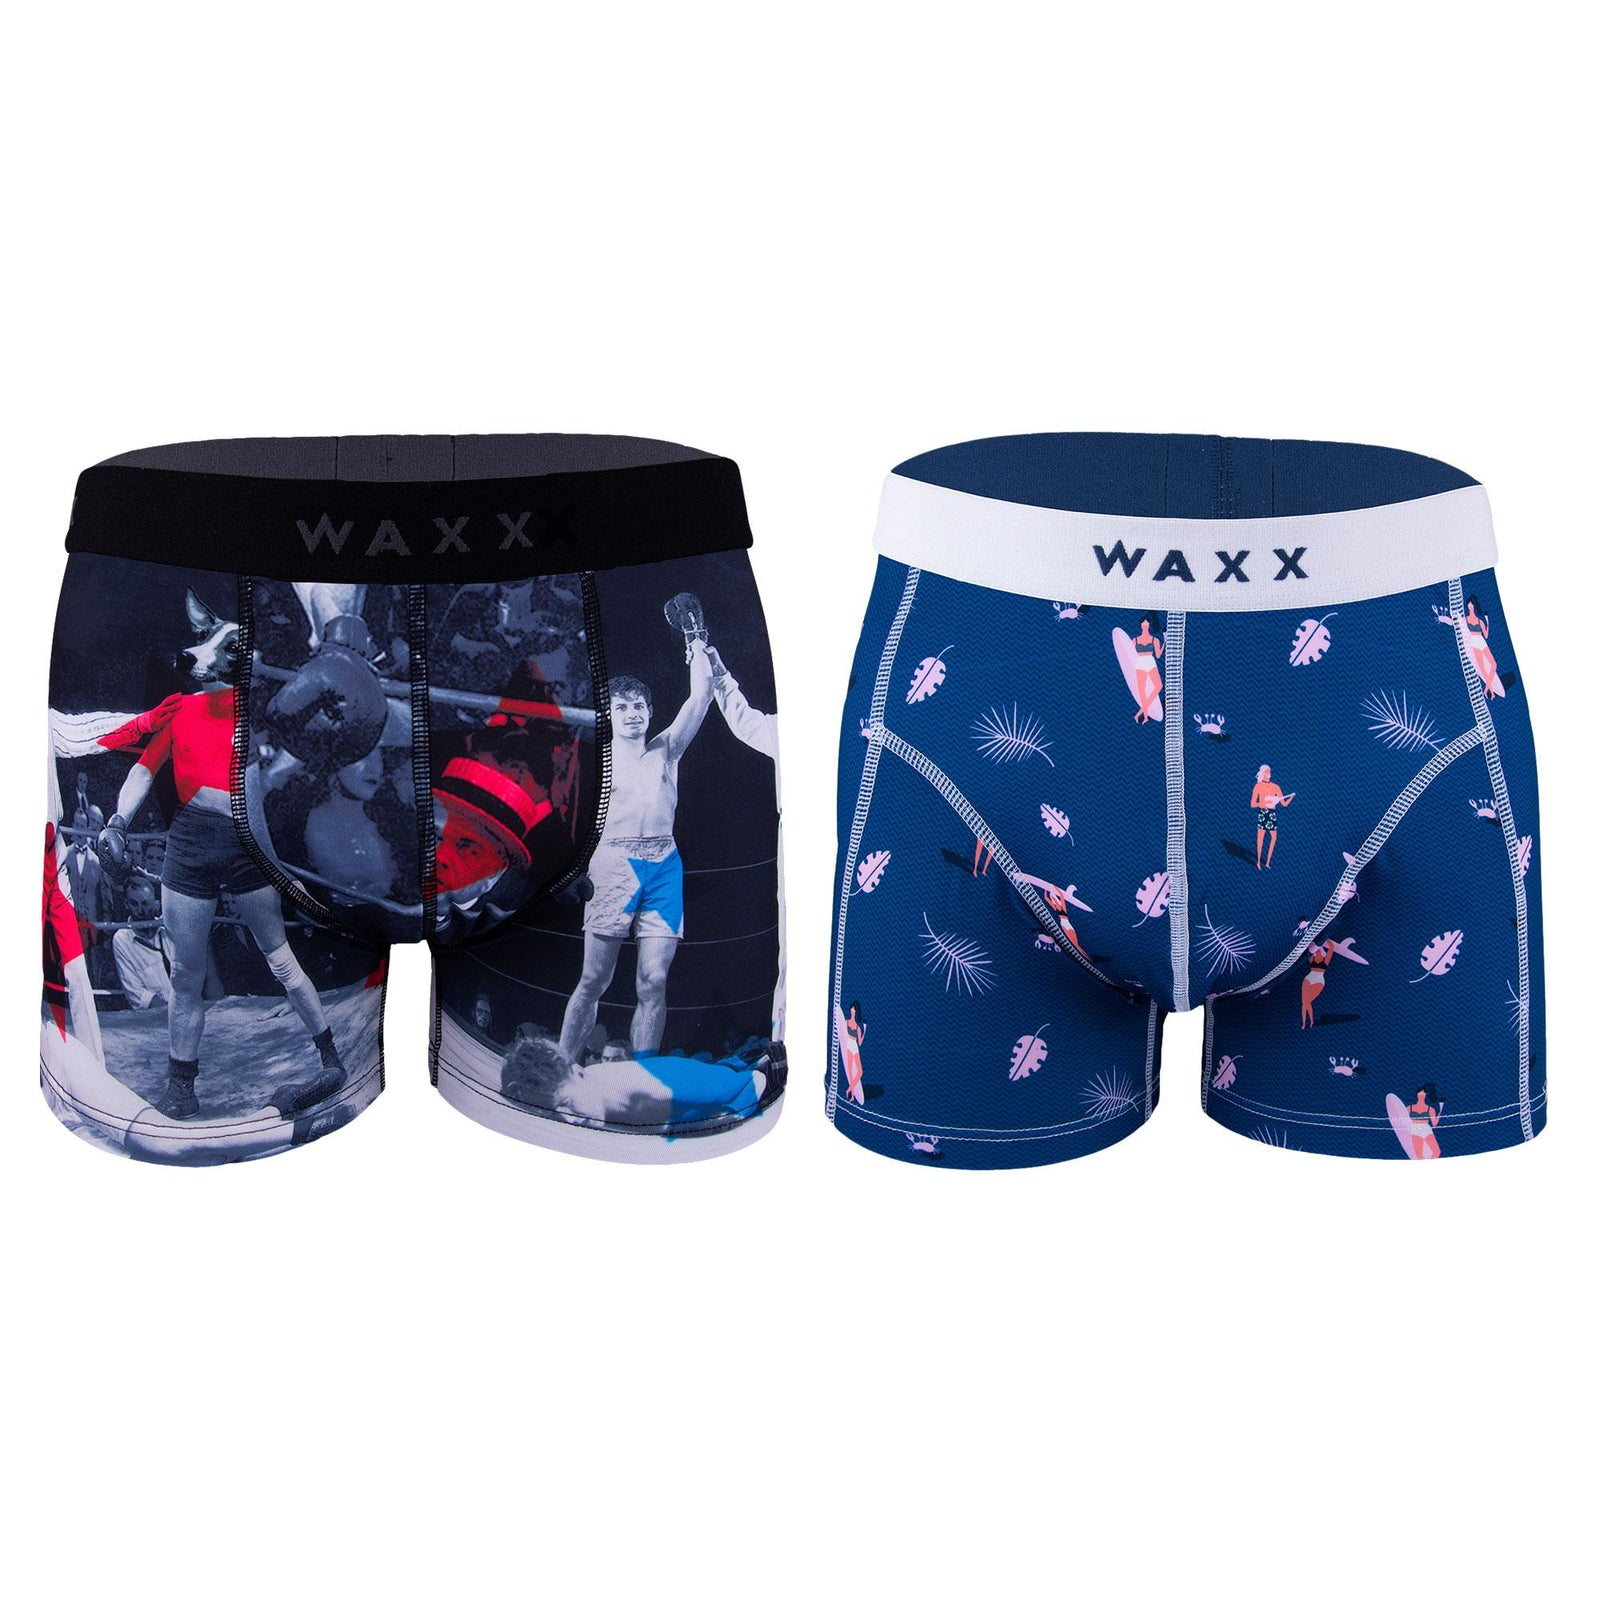 Let's Get Physical - Waxx Men's Trunk Boxer Short